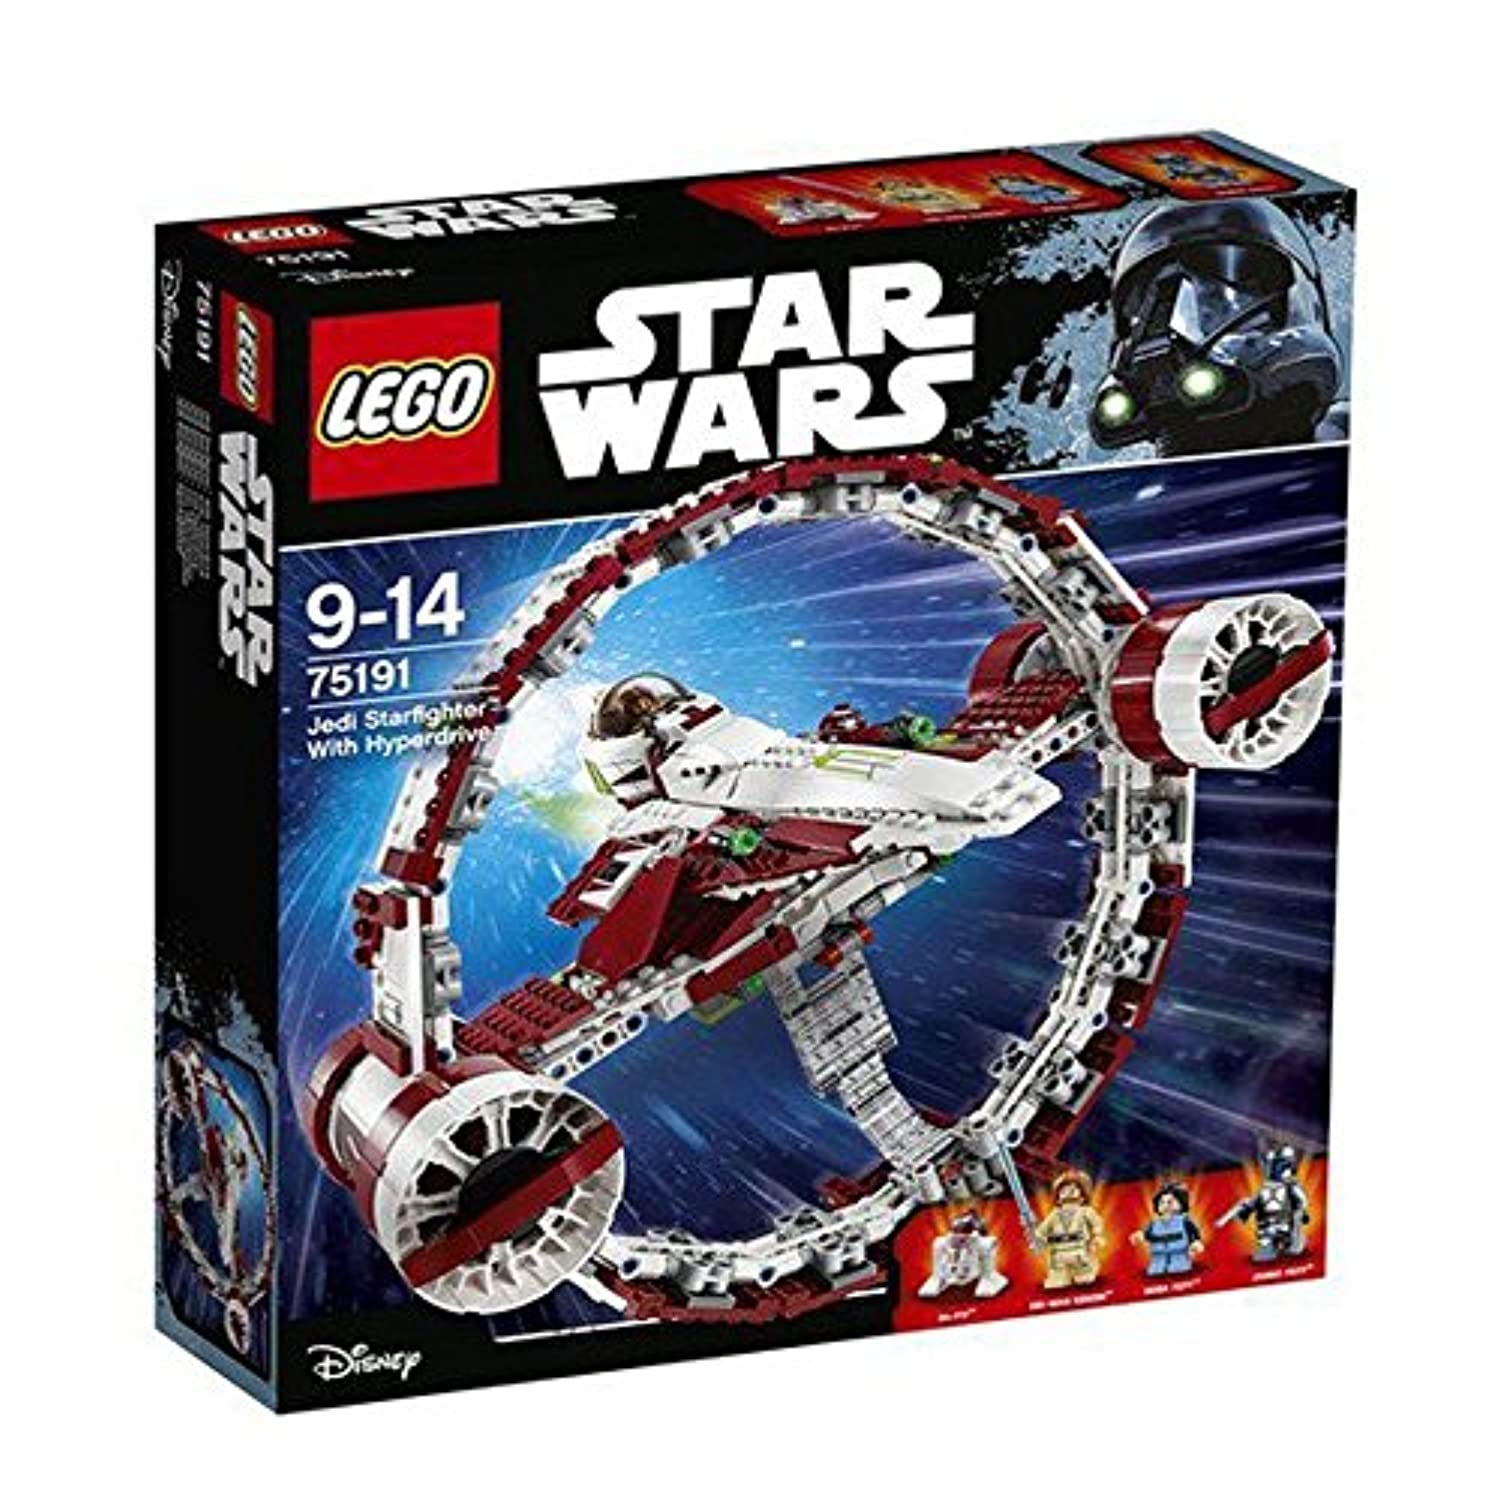 Lego 75191 Jedi Starfighter With Hyperdrive ジェダイスターファイターとハイパードライブ[並行輸入品]